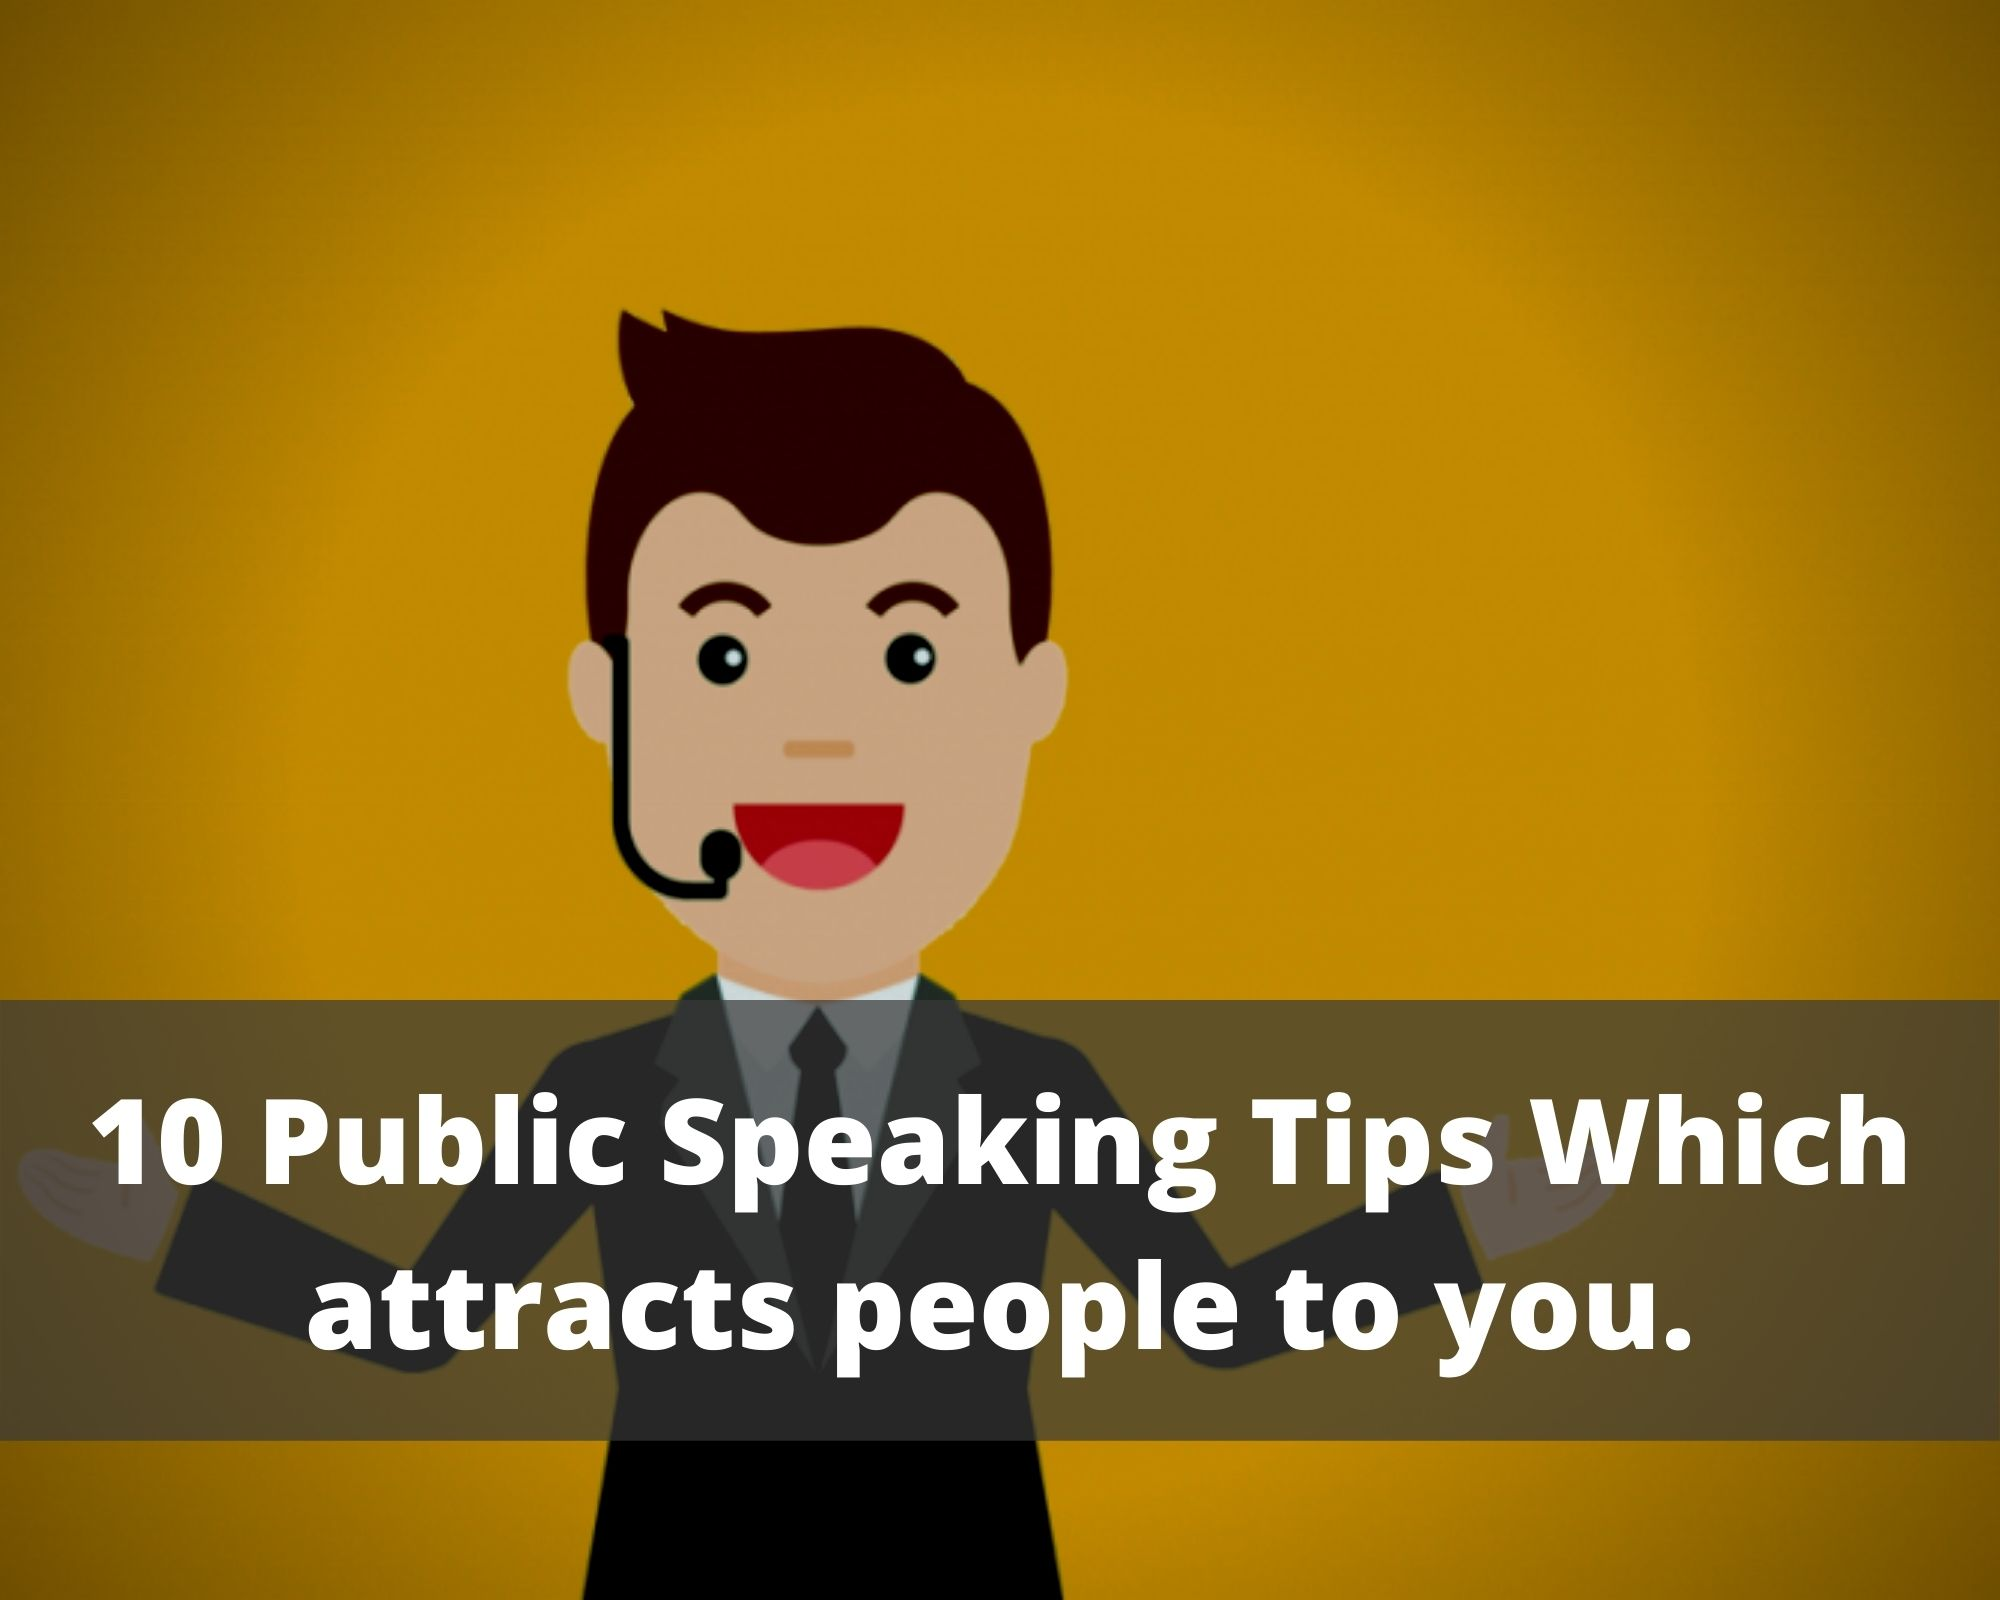 10 Public Speaking Tips Which attracts people to you.